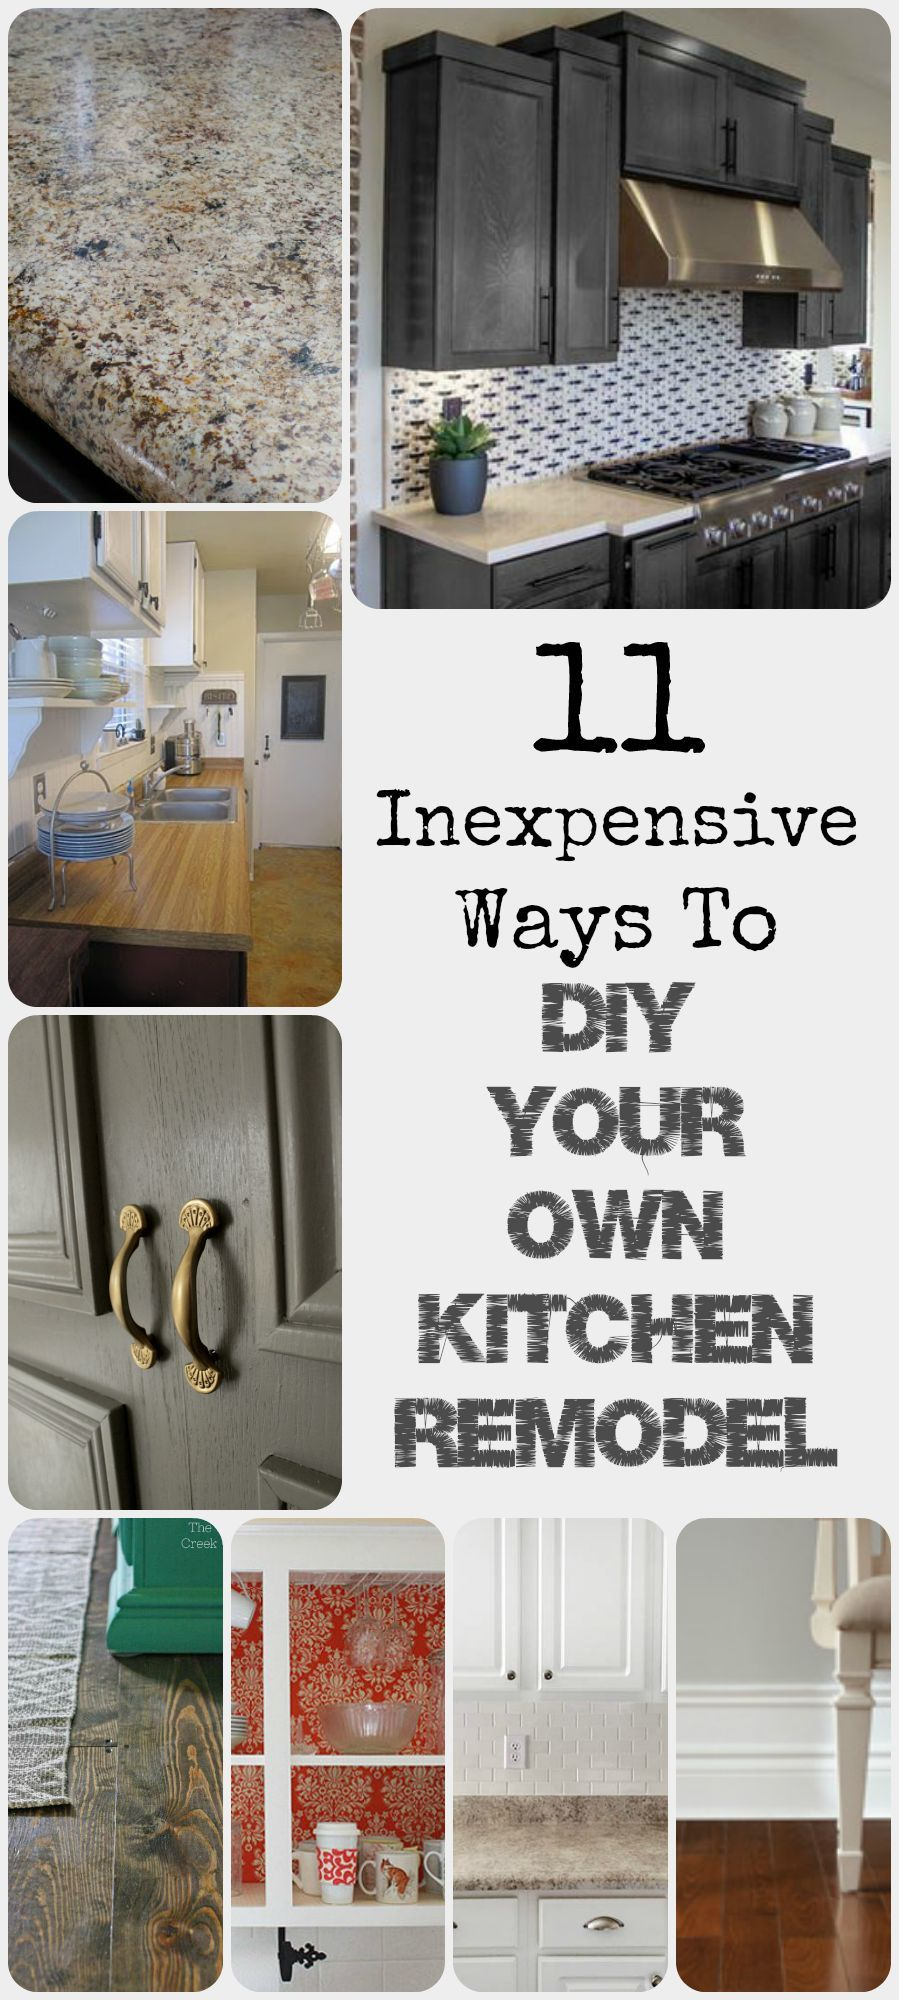 inexpensive kitchen remodel 11 Ways to DIY Kitchen Remodel